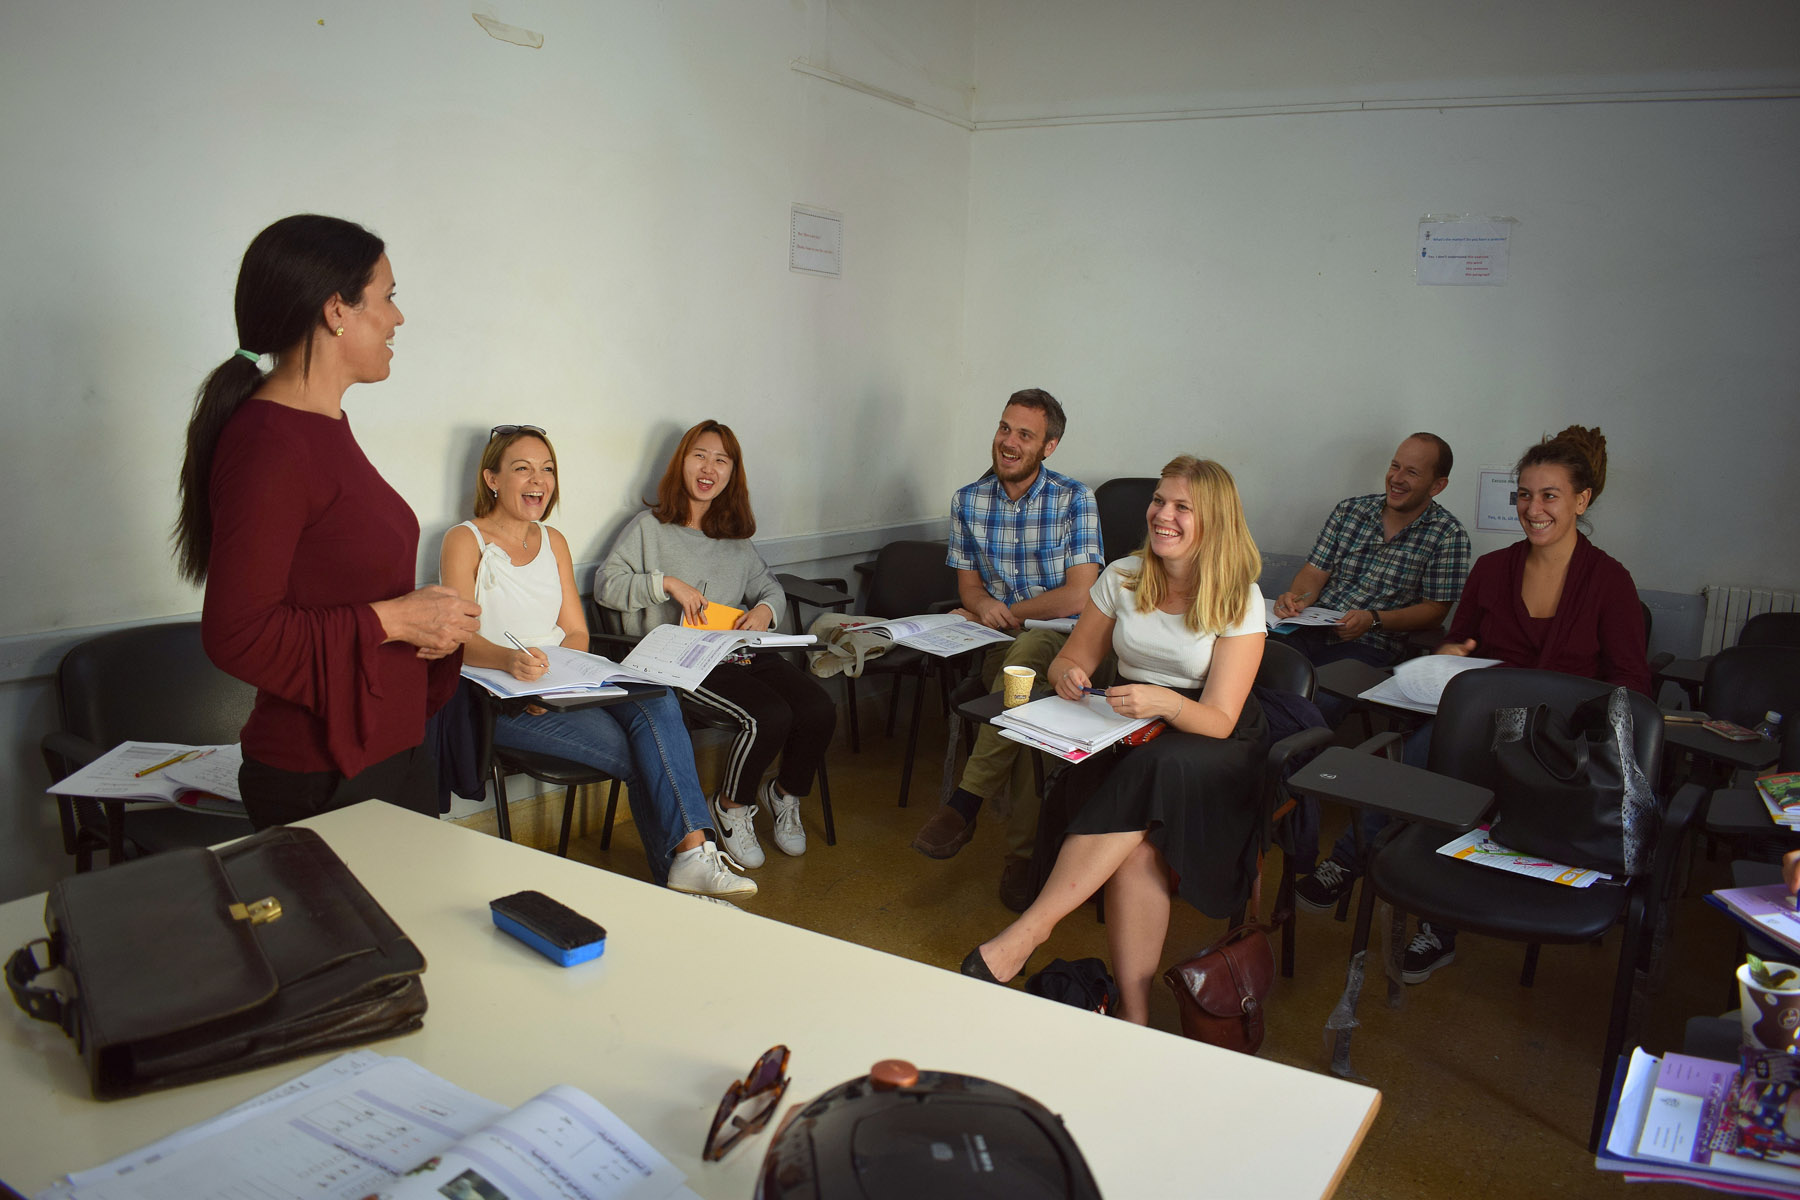 Foreign students attend class at the Bourguiba Institute of Modern Languages in Tunis, Tunisia. (Khaoula ben Amara)